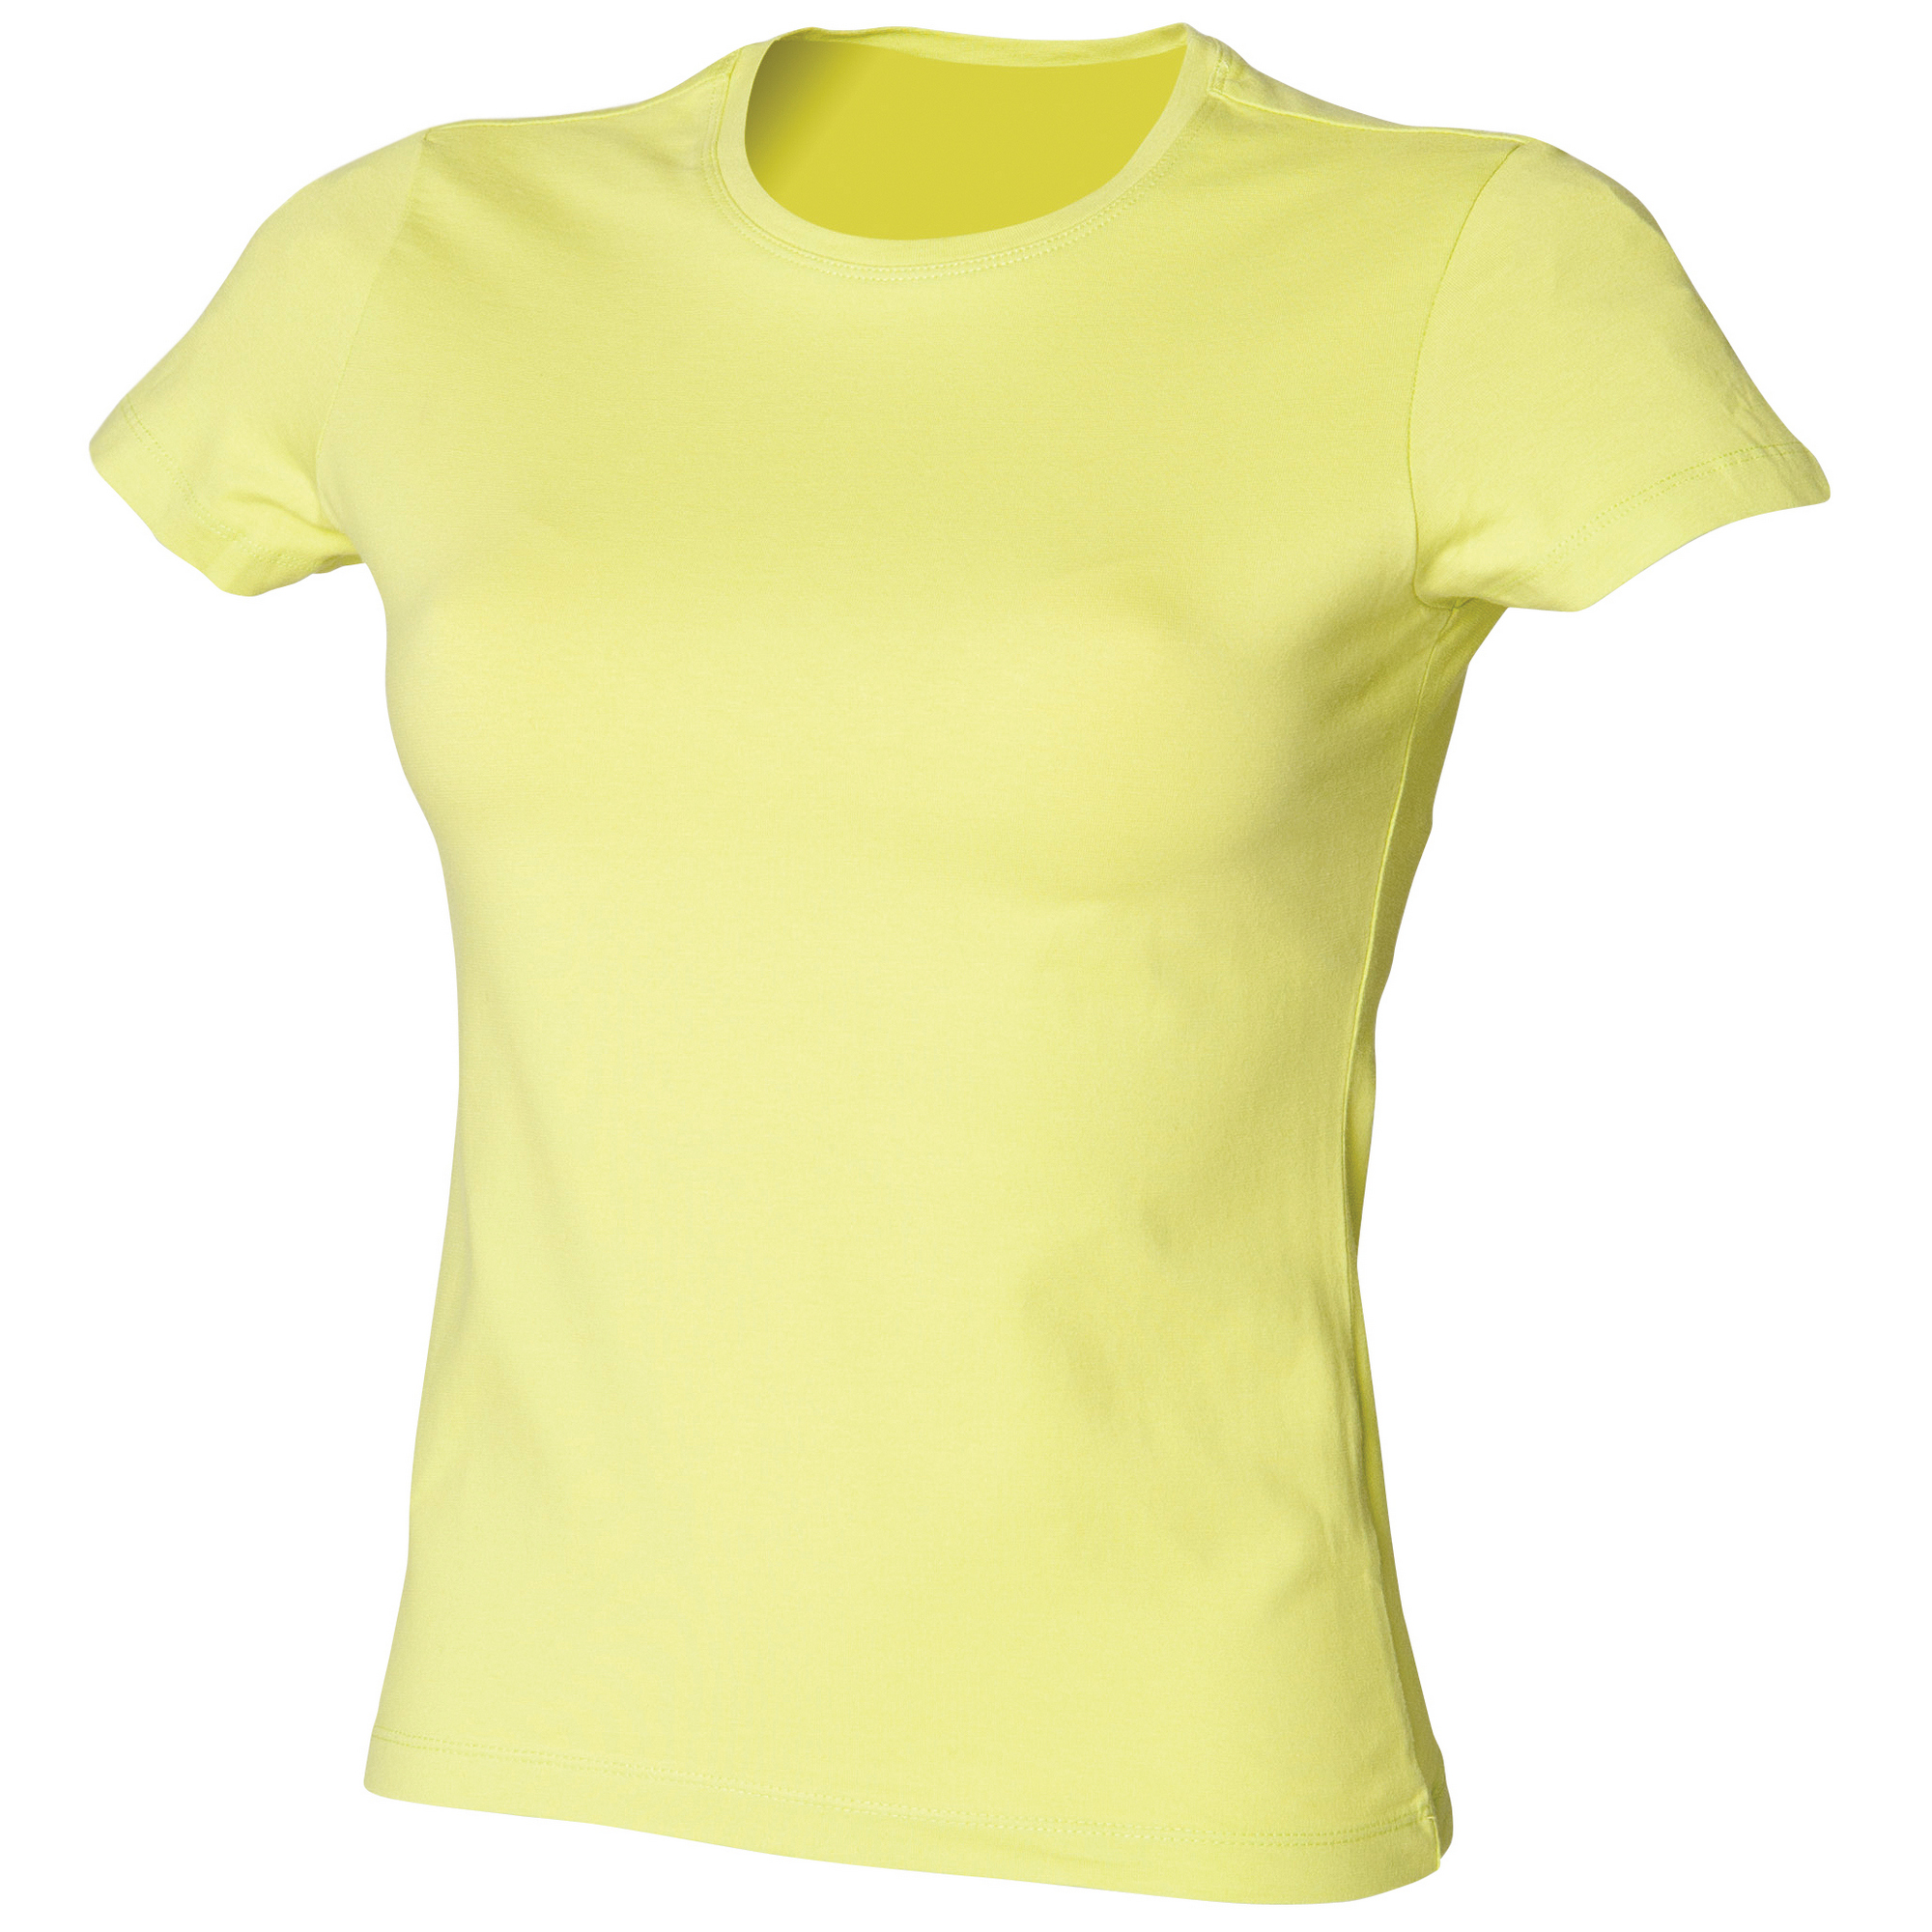 Skinni-Fit-Ladies-Womens-Stretch-Casual-T-Shirt-19-Colours-S-2XL